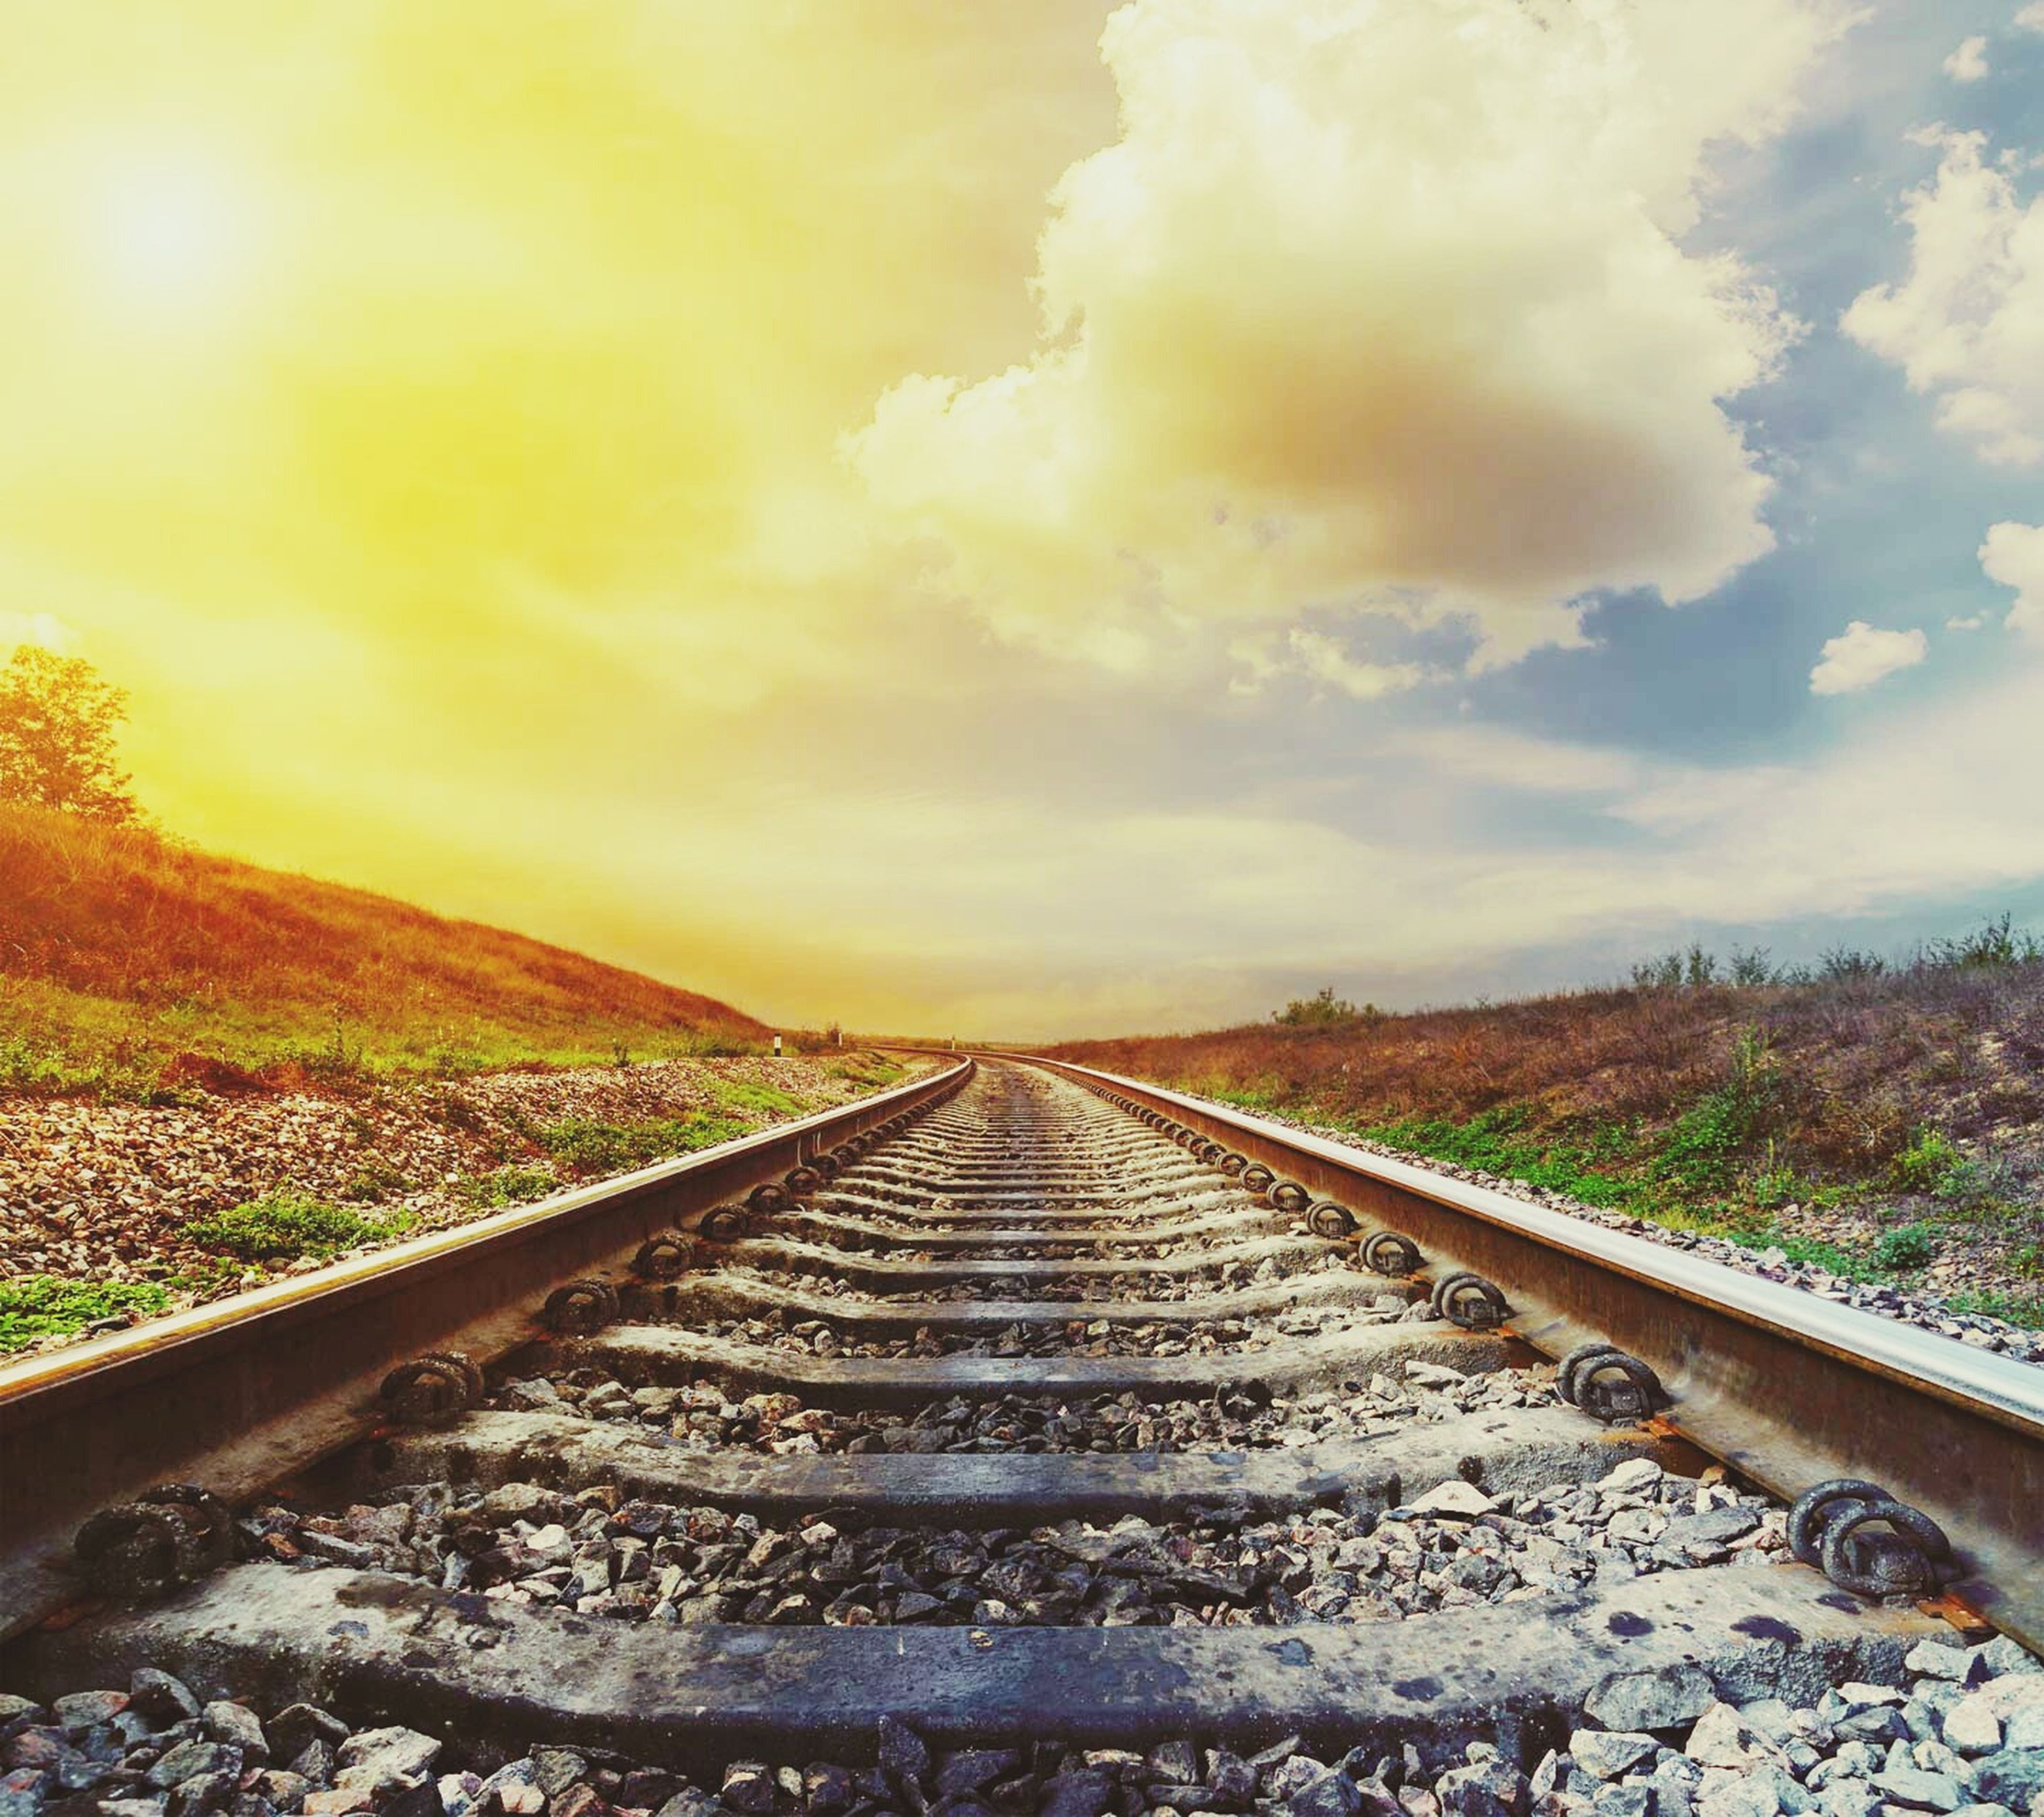 the way forward, diminishing perspective, sky, railroad track, transportation, vanishing point, cloud - sky, landscape, tranquility, tranquil scene, rail transportation, nature, scenics, cloud, cloudy, tree, beauty in nature, straight, outdoors, field